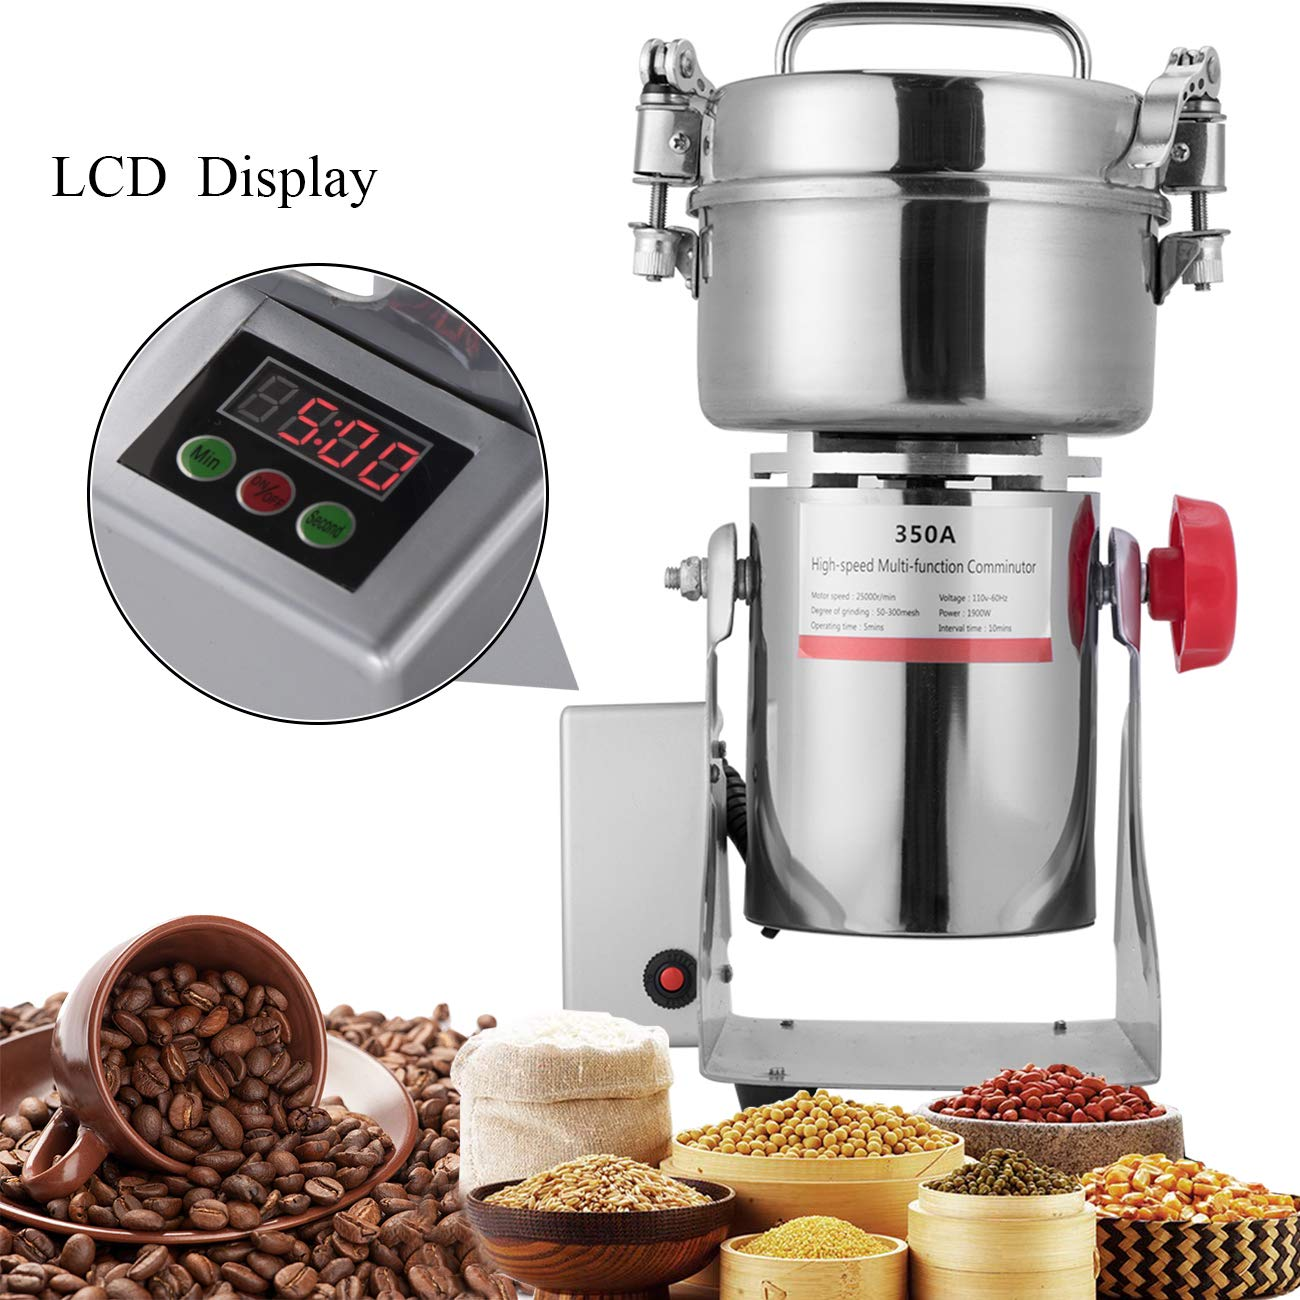 APWONE 350G Electric Grain Mills Grinder Powder LCD Digital Stainless Steel Ultra Grinder Machine Pulverizer for Kitchen Herb Spice Pepper Coffee Corn by APWONE